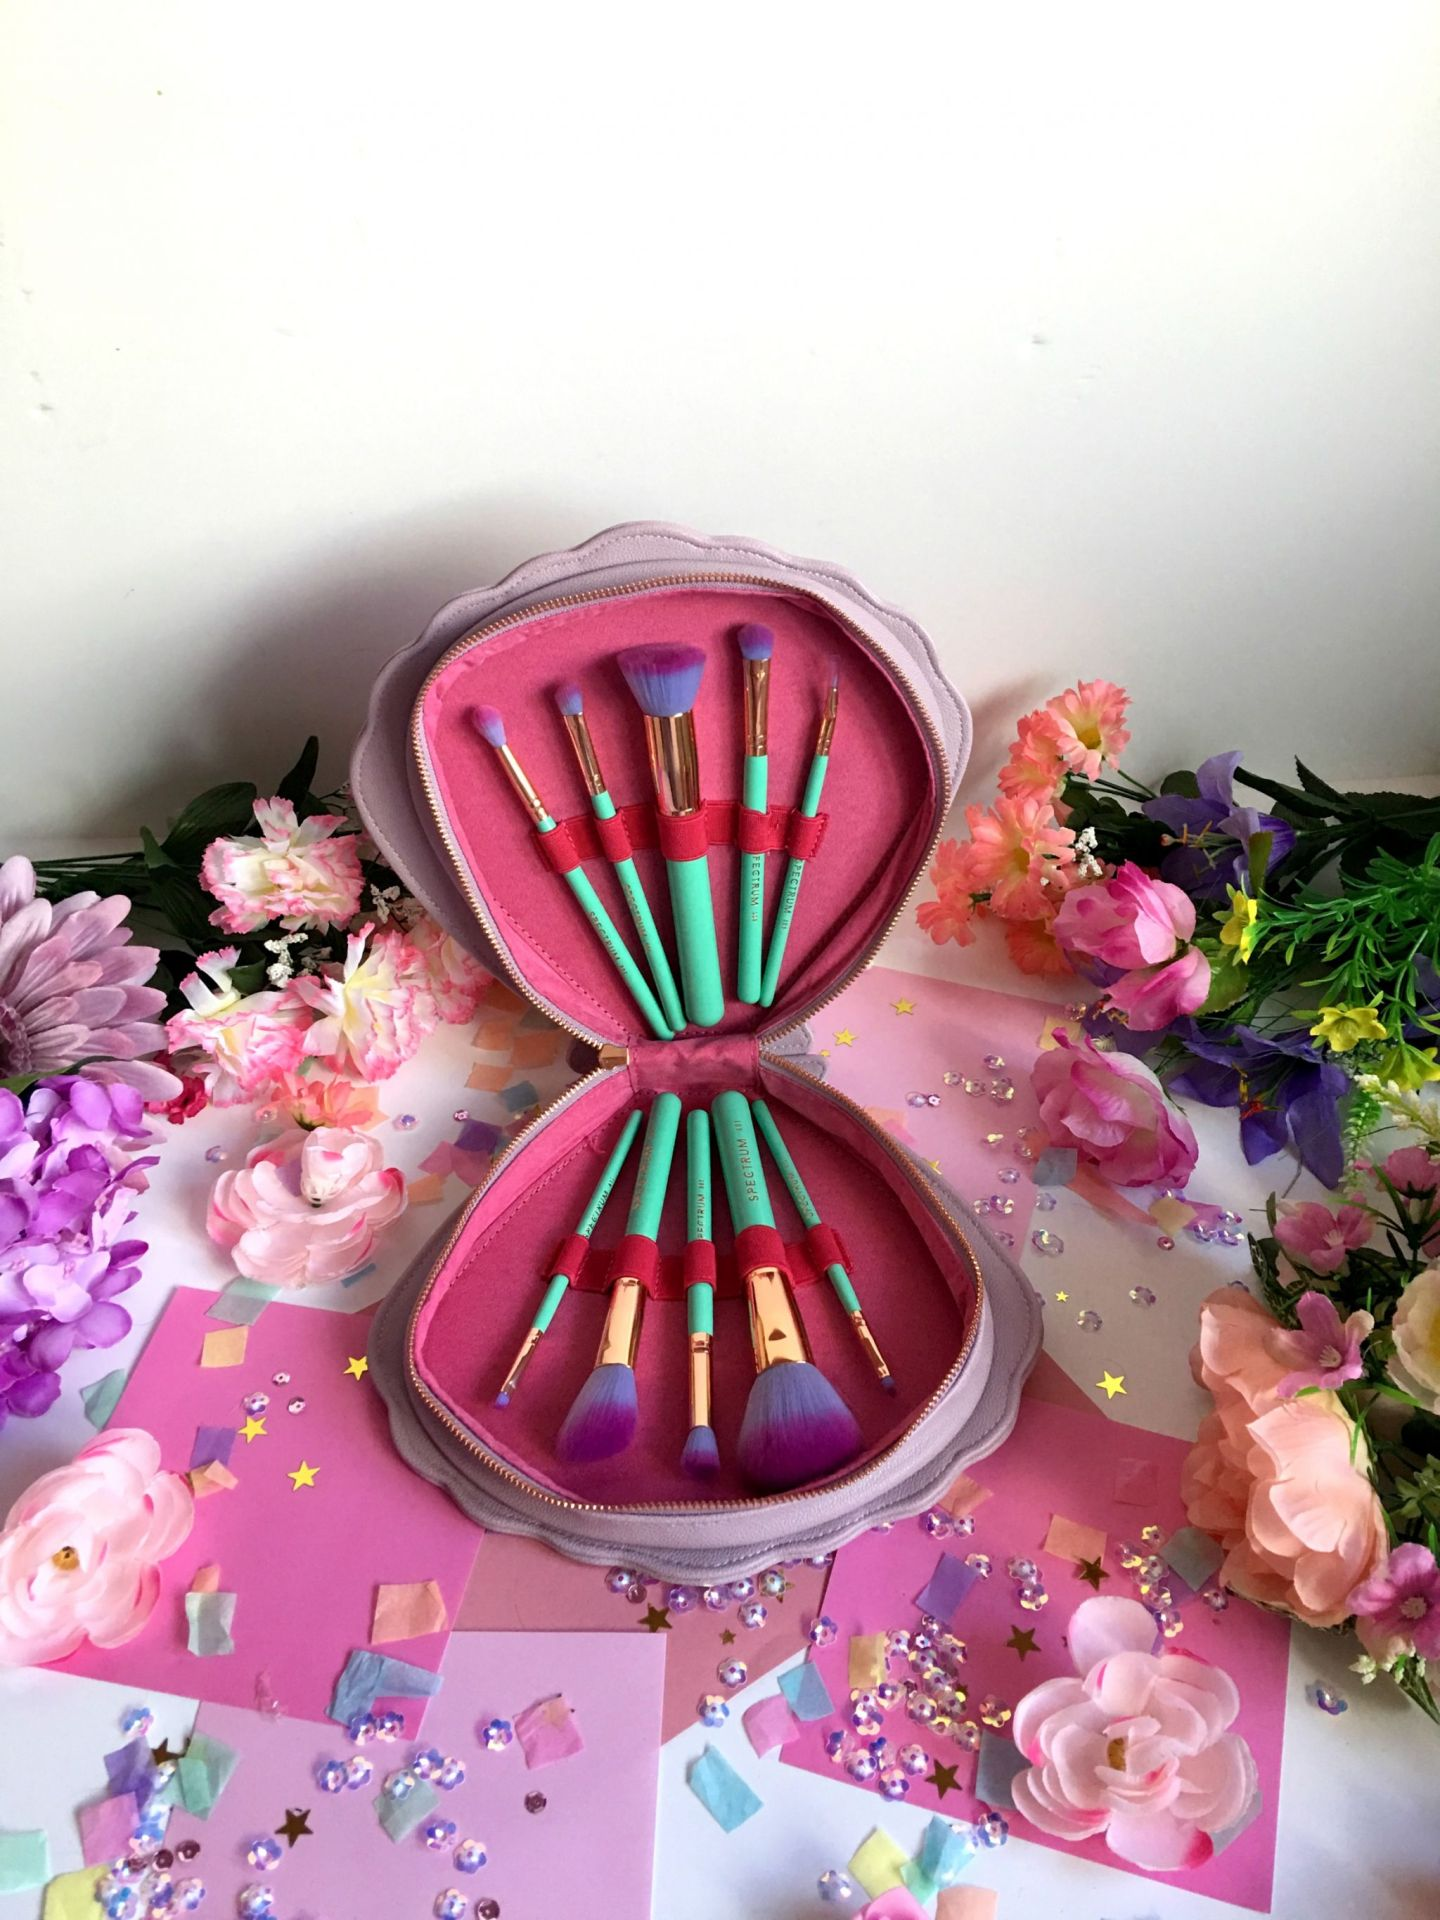 Spectrum Glam Clam Brushes (12)